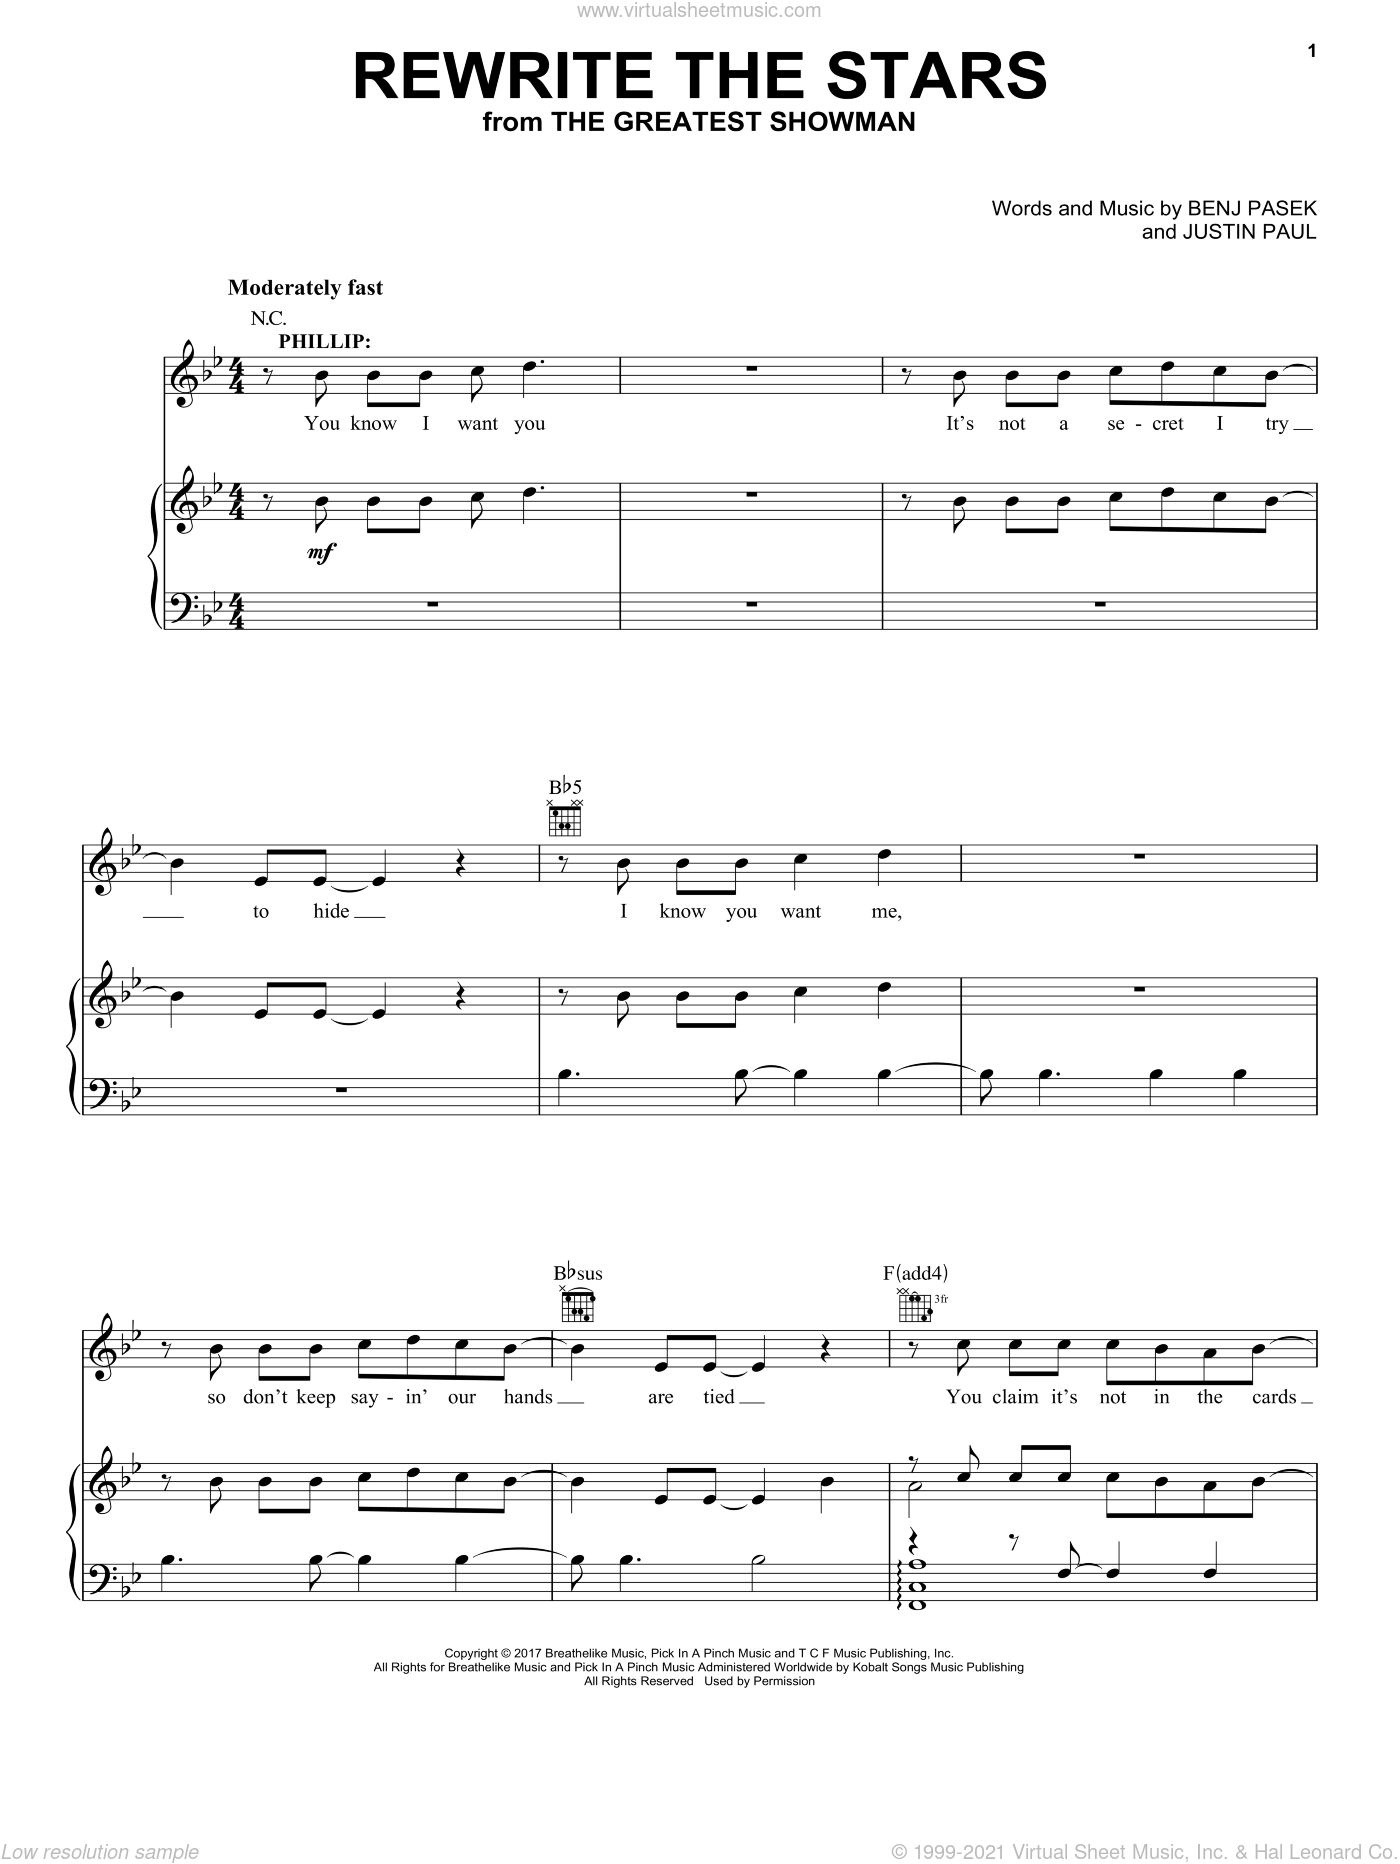 Rewrite The Stars sheet music for voice, piano or guitar by Pasek & Paul, Benj Pasek and Justin Paul, intermediate skill level